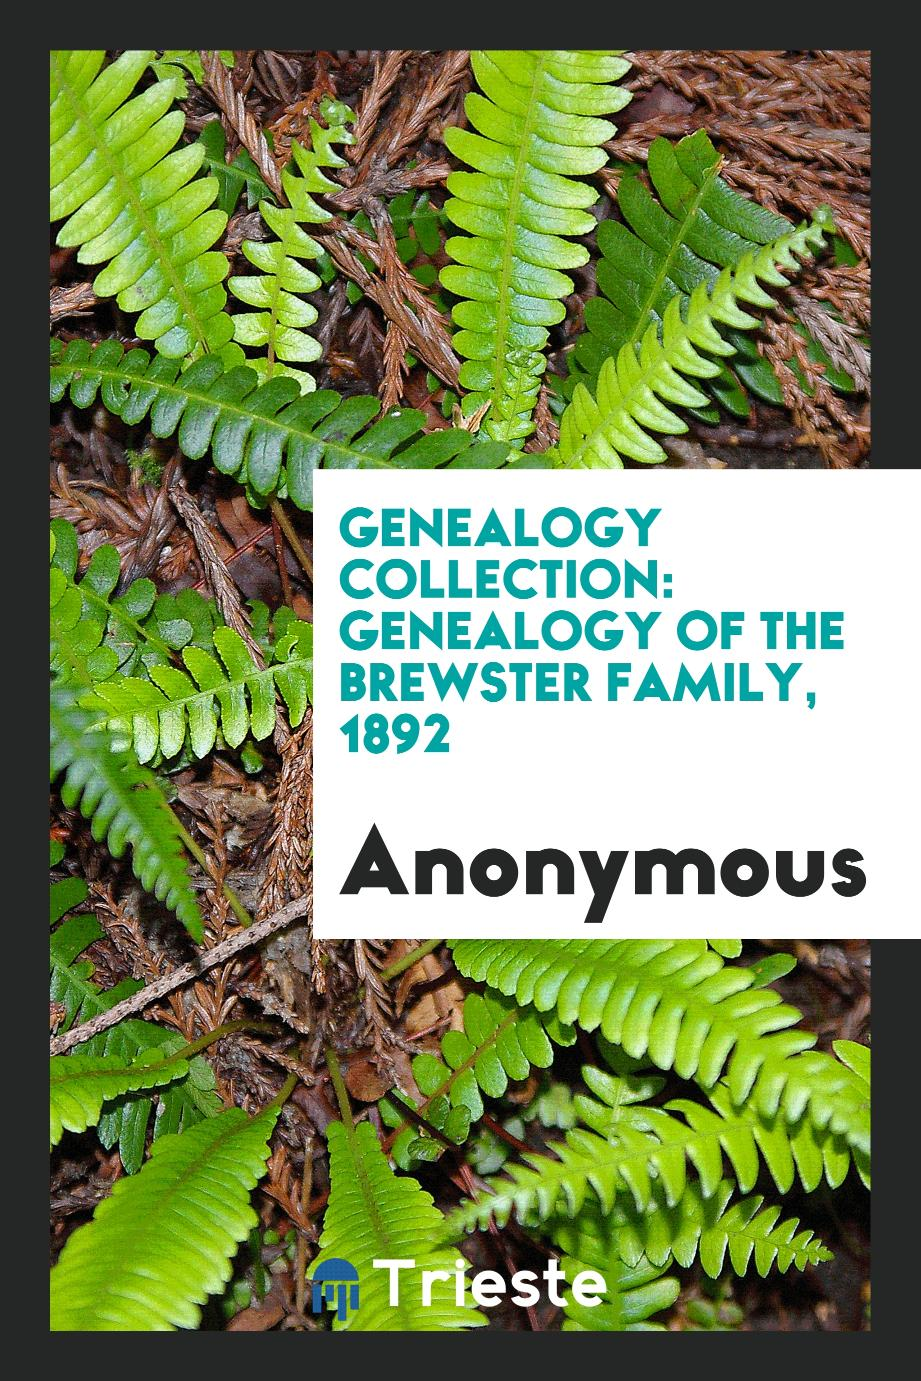 Genealogy collection: Genealogy of the Brewster family, 1892